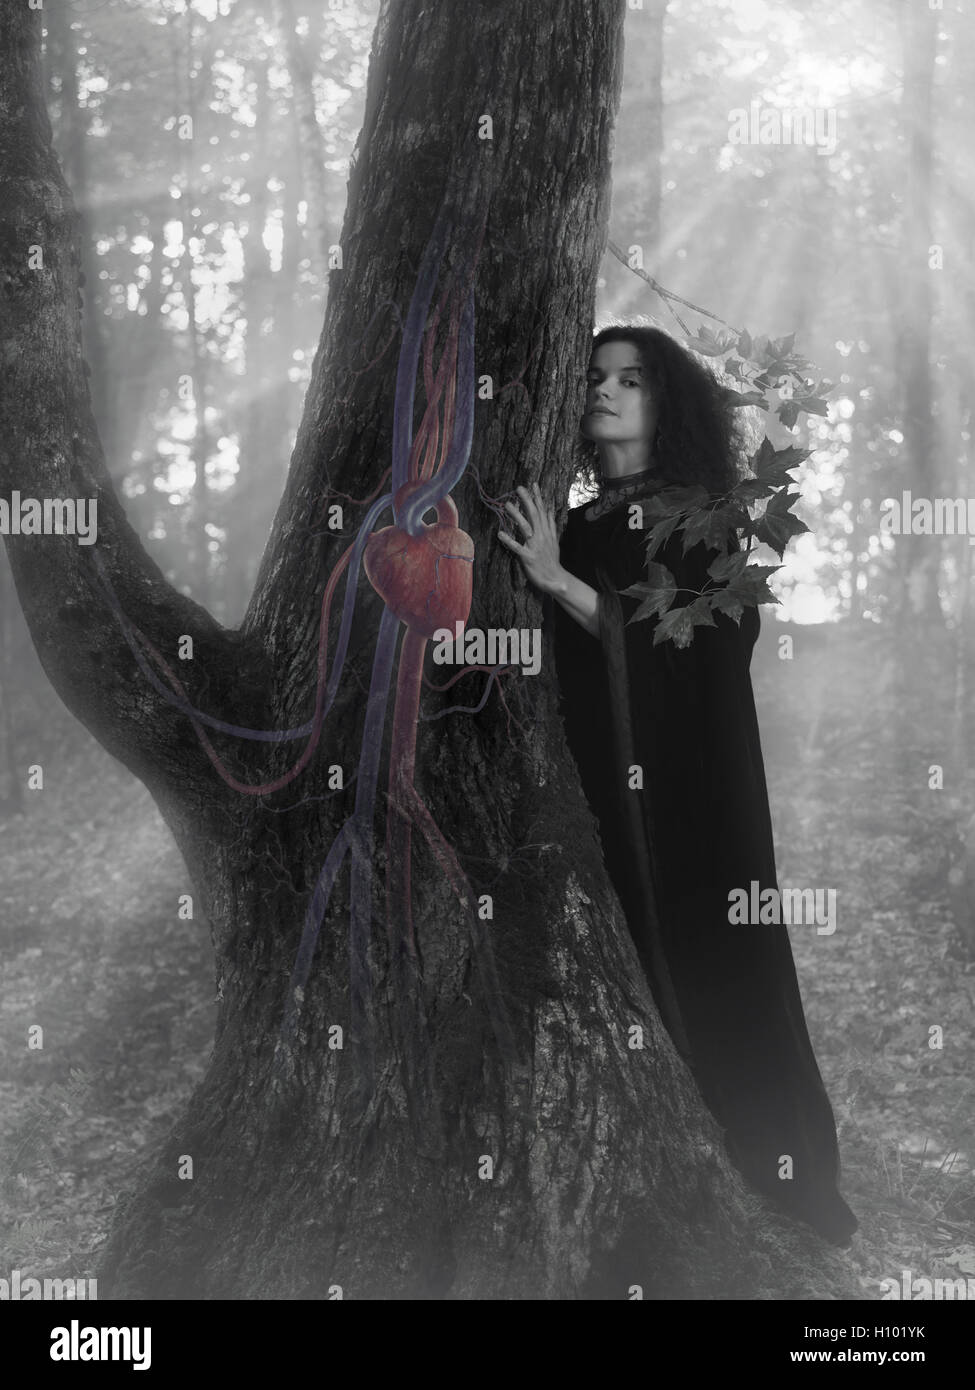 Woman druid in the forest listening to the heartbeat of a tree, artistic conceptual black and white photo illustration - Stock Image